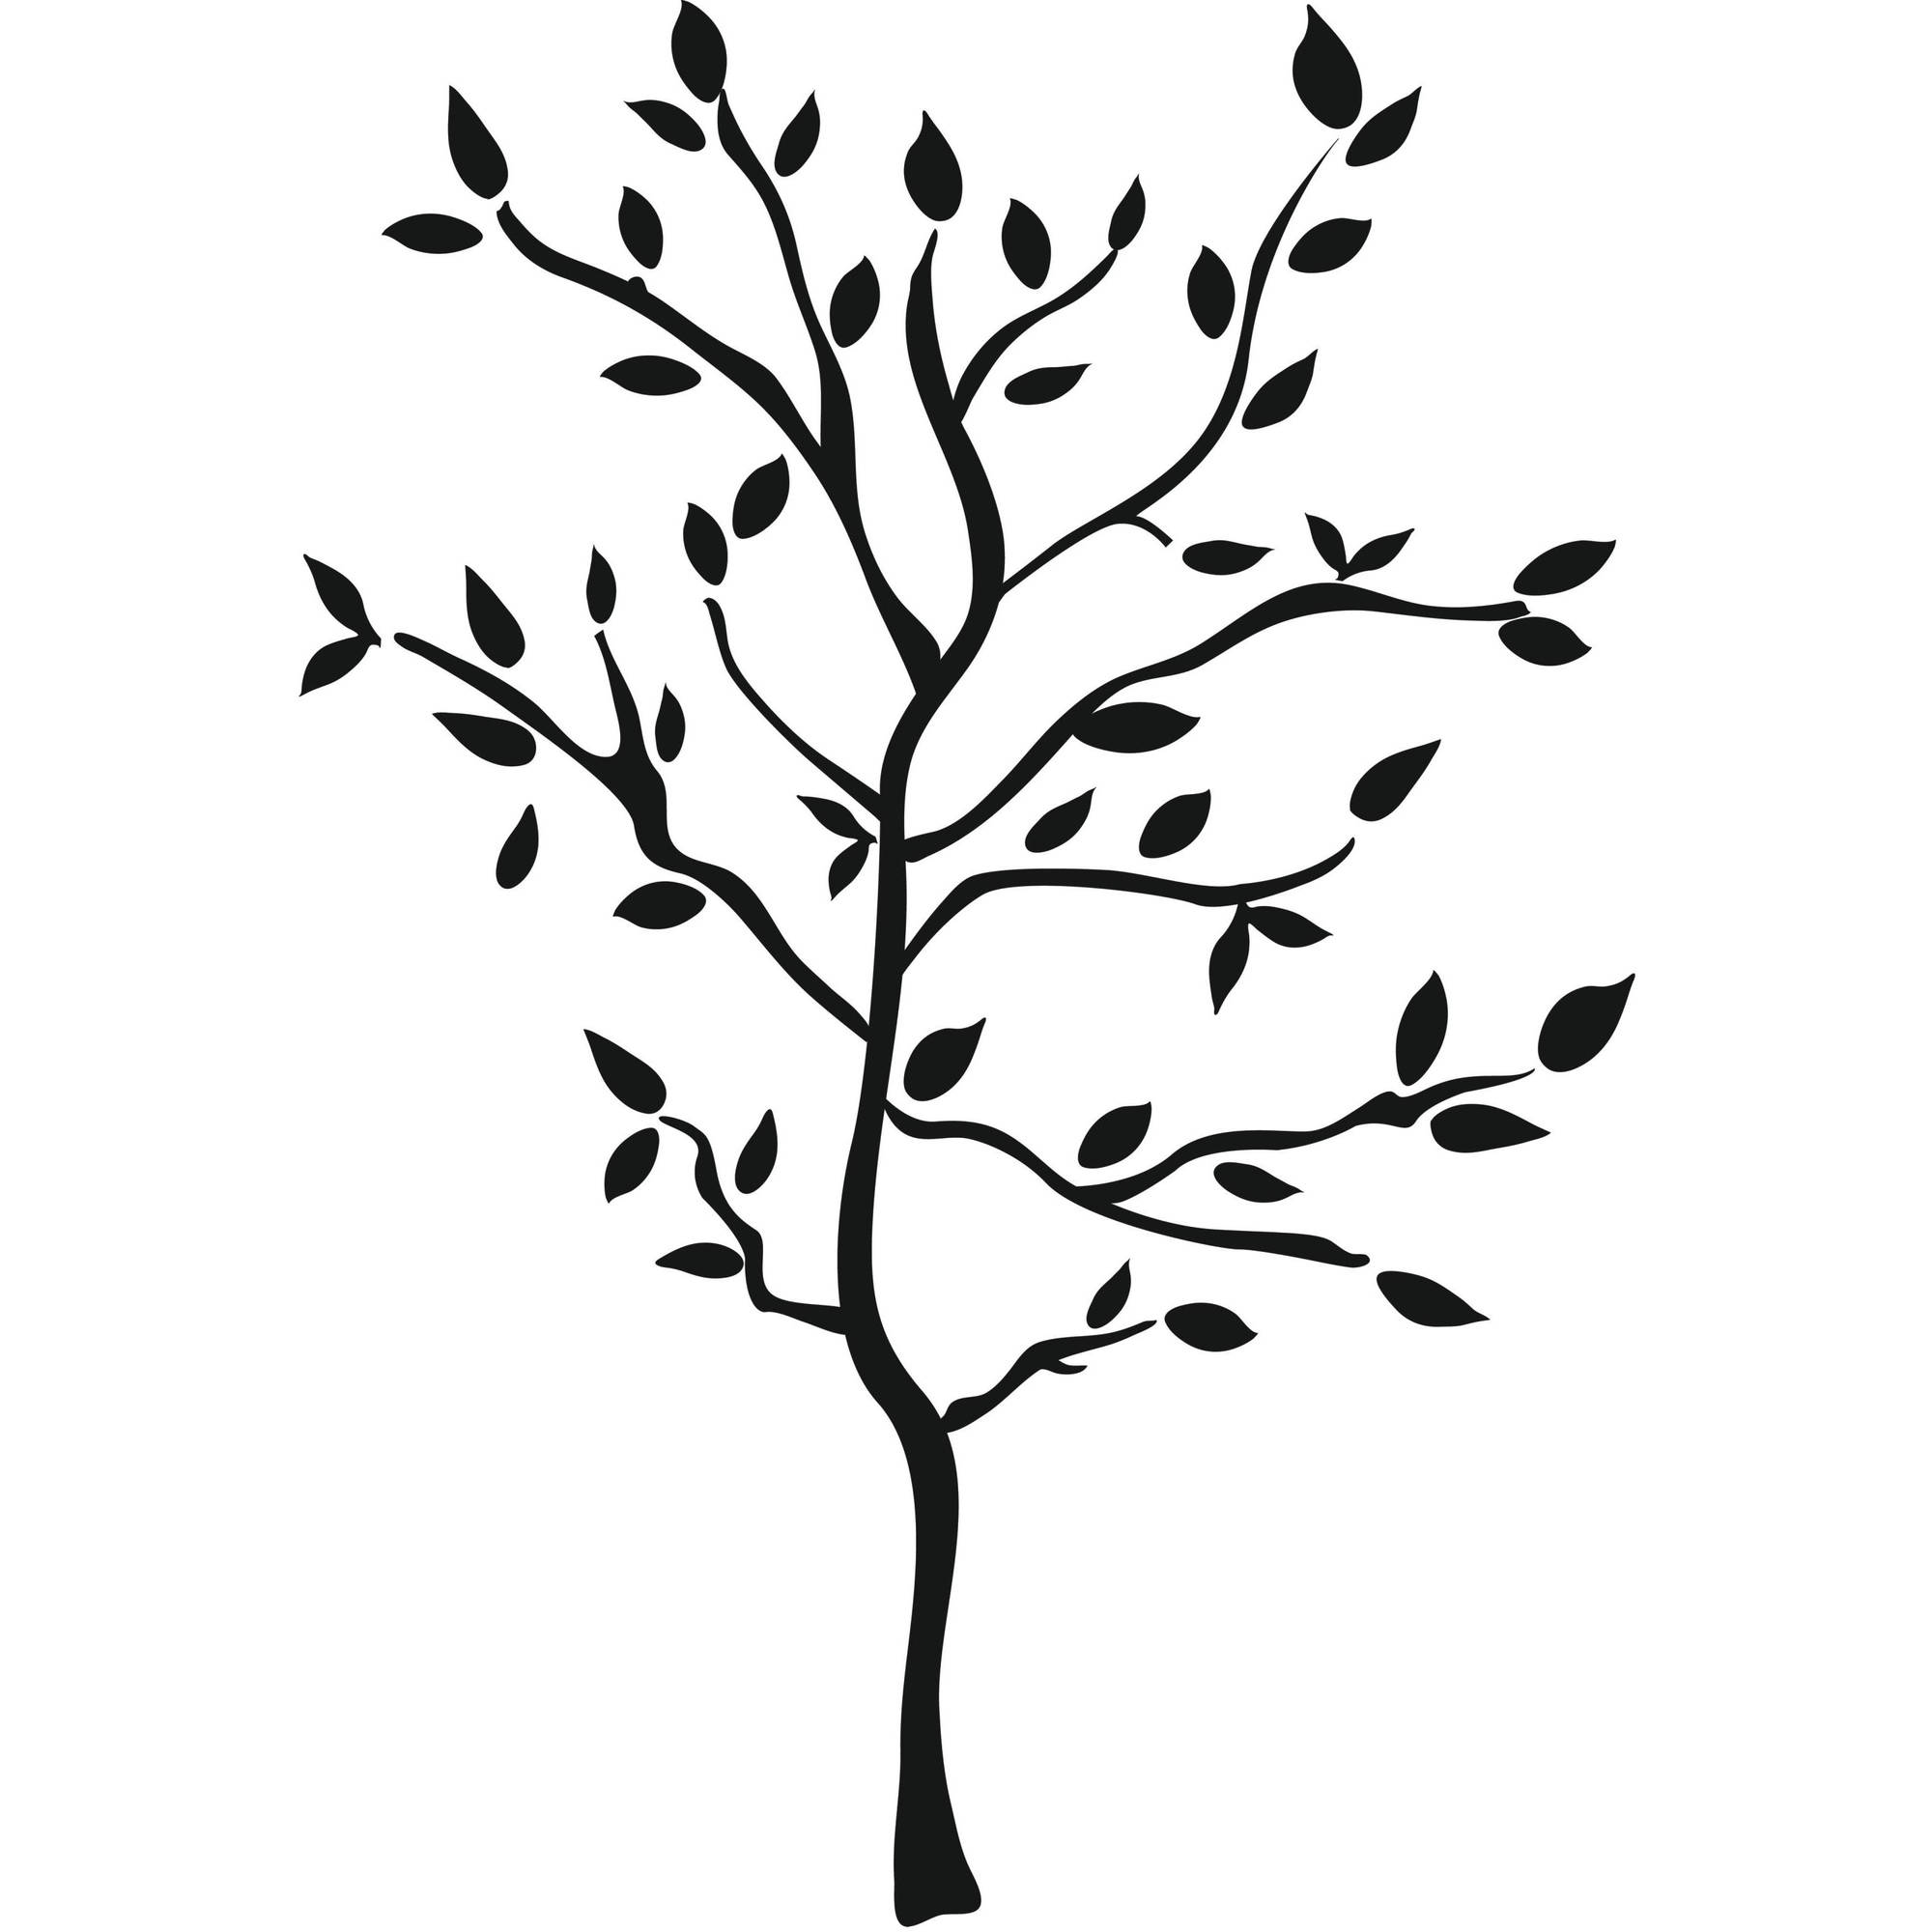 Tree Branches Peel And Stick Wall Decals   Walmart.com